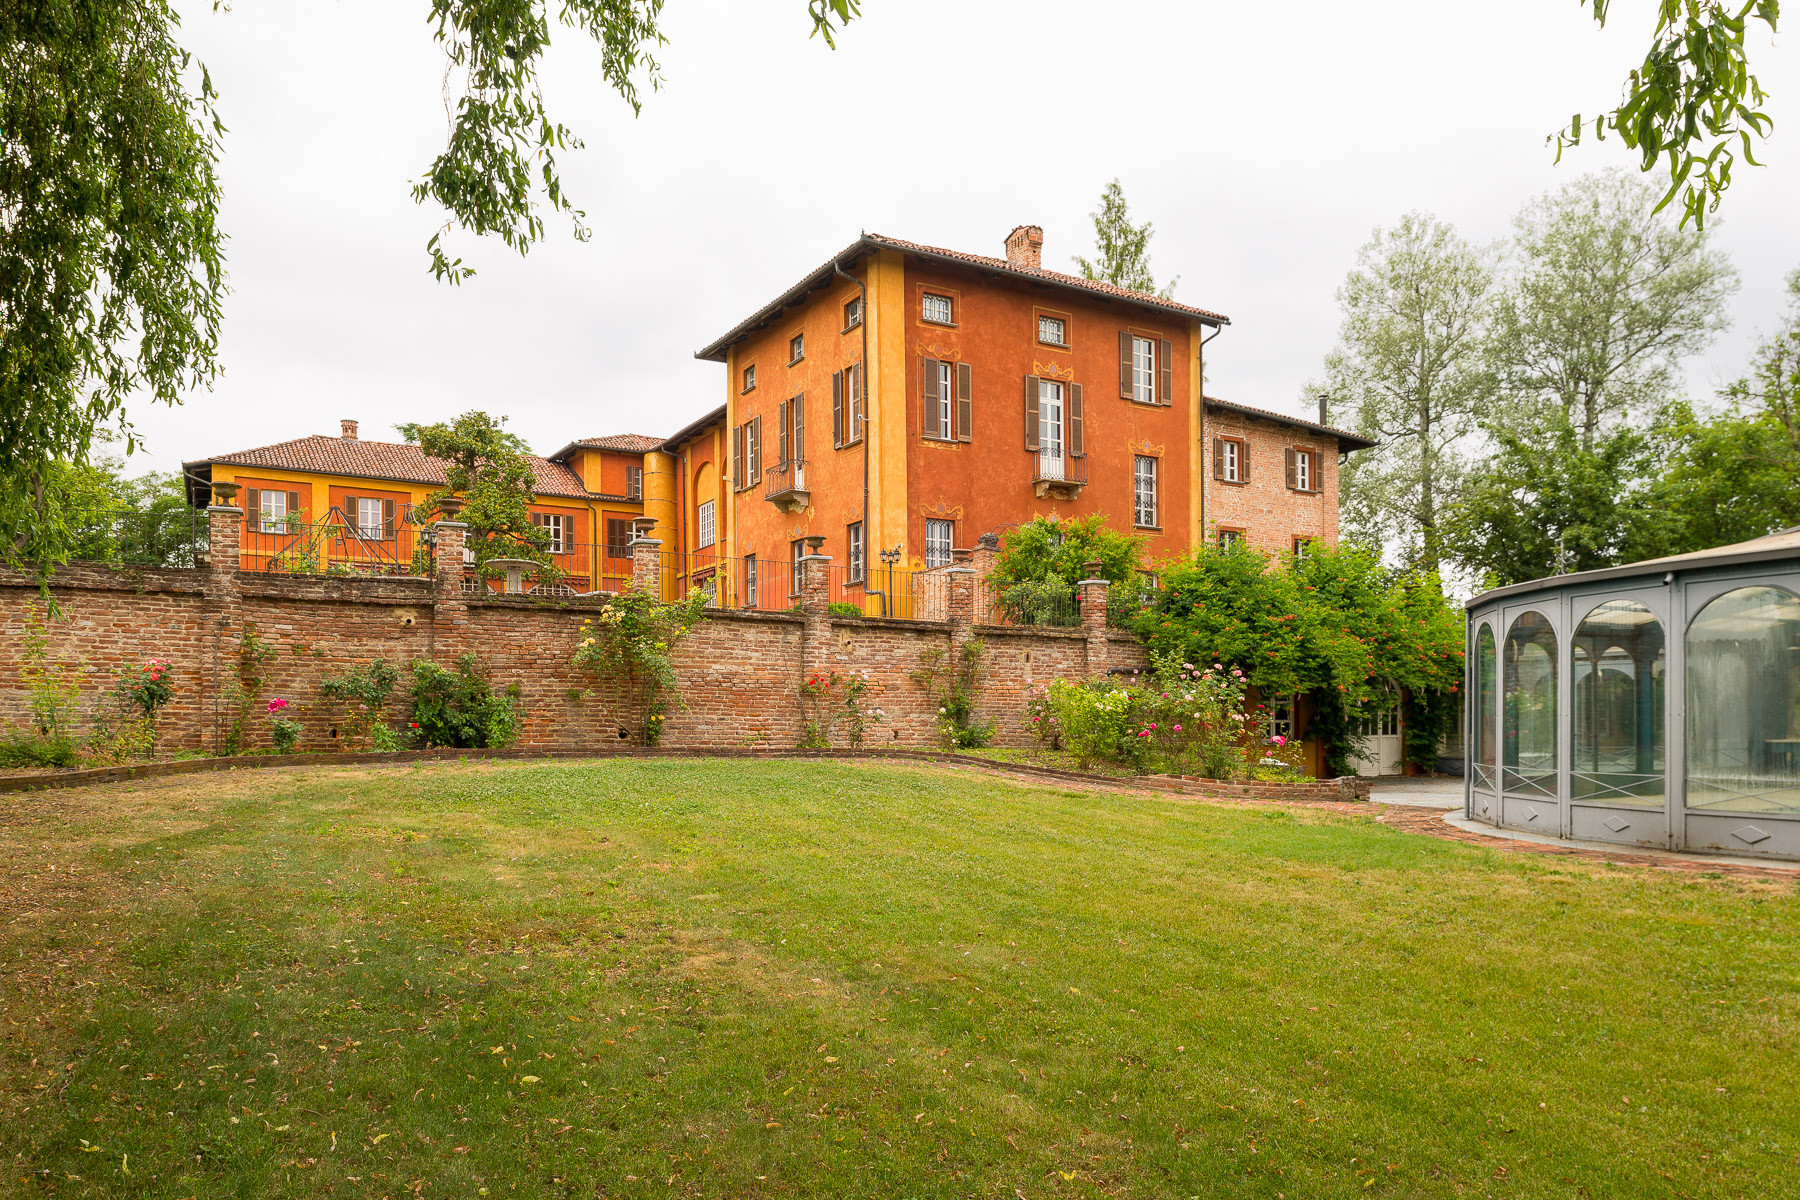 Single Family Home for Sale at Historical mansion in the Asti hills Frazione Lavezzole Other Asti, Asti 14015 Italy